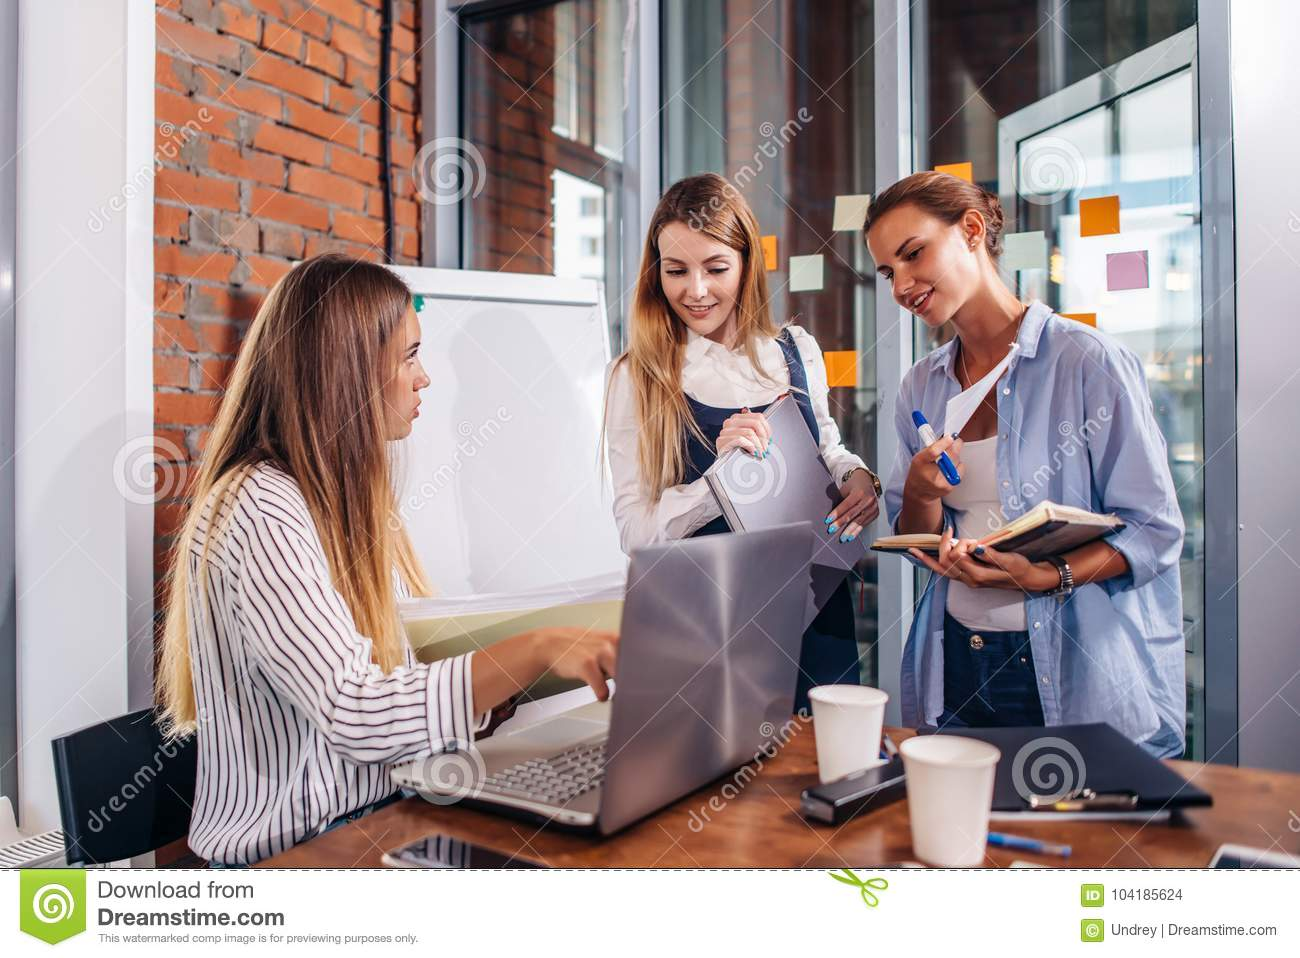 Young female manager sitting at desk pointing at laptop explaining giving tasks to her employees standing writing the